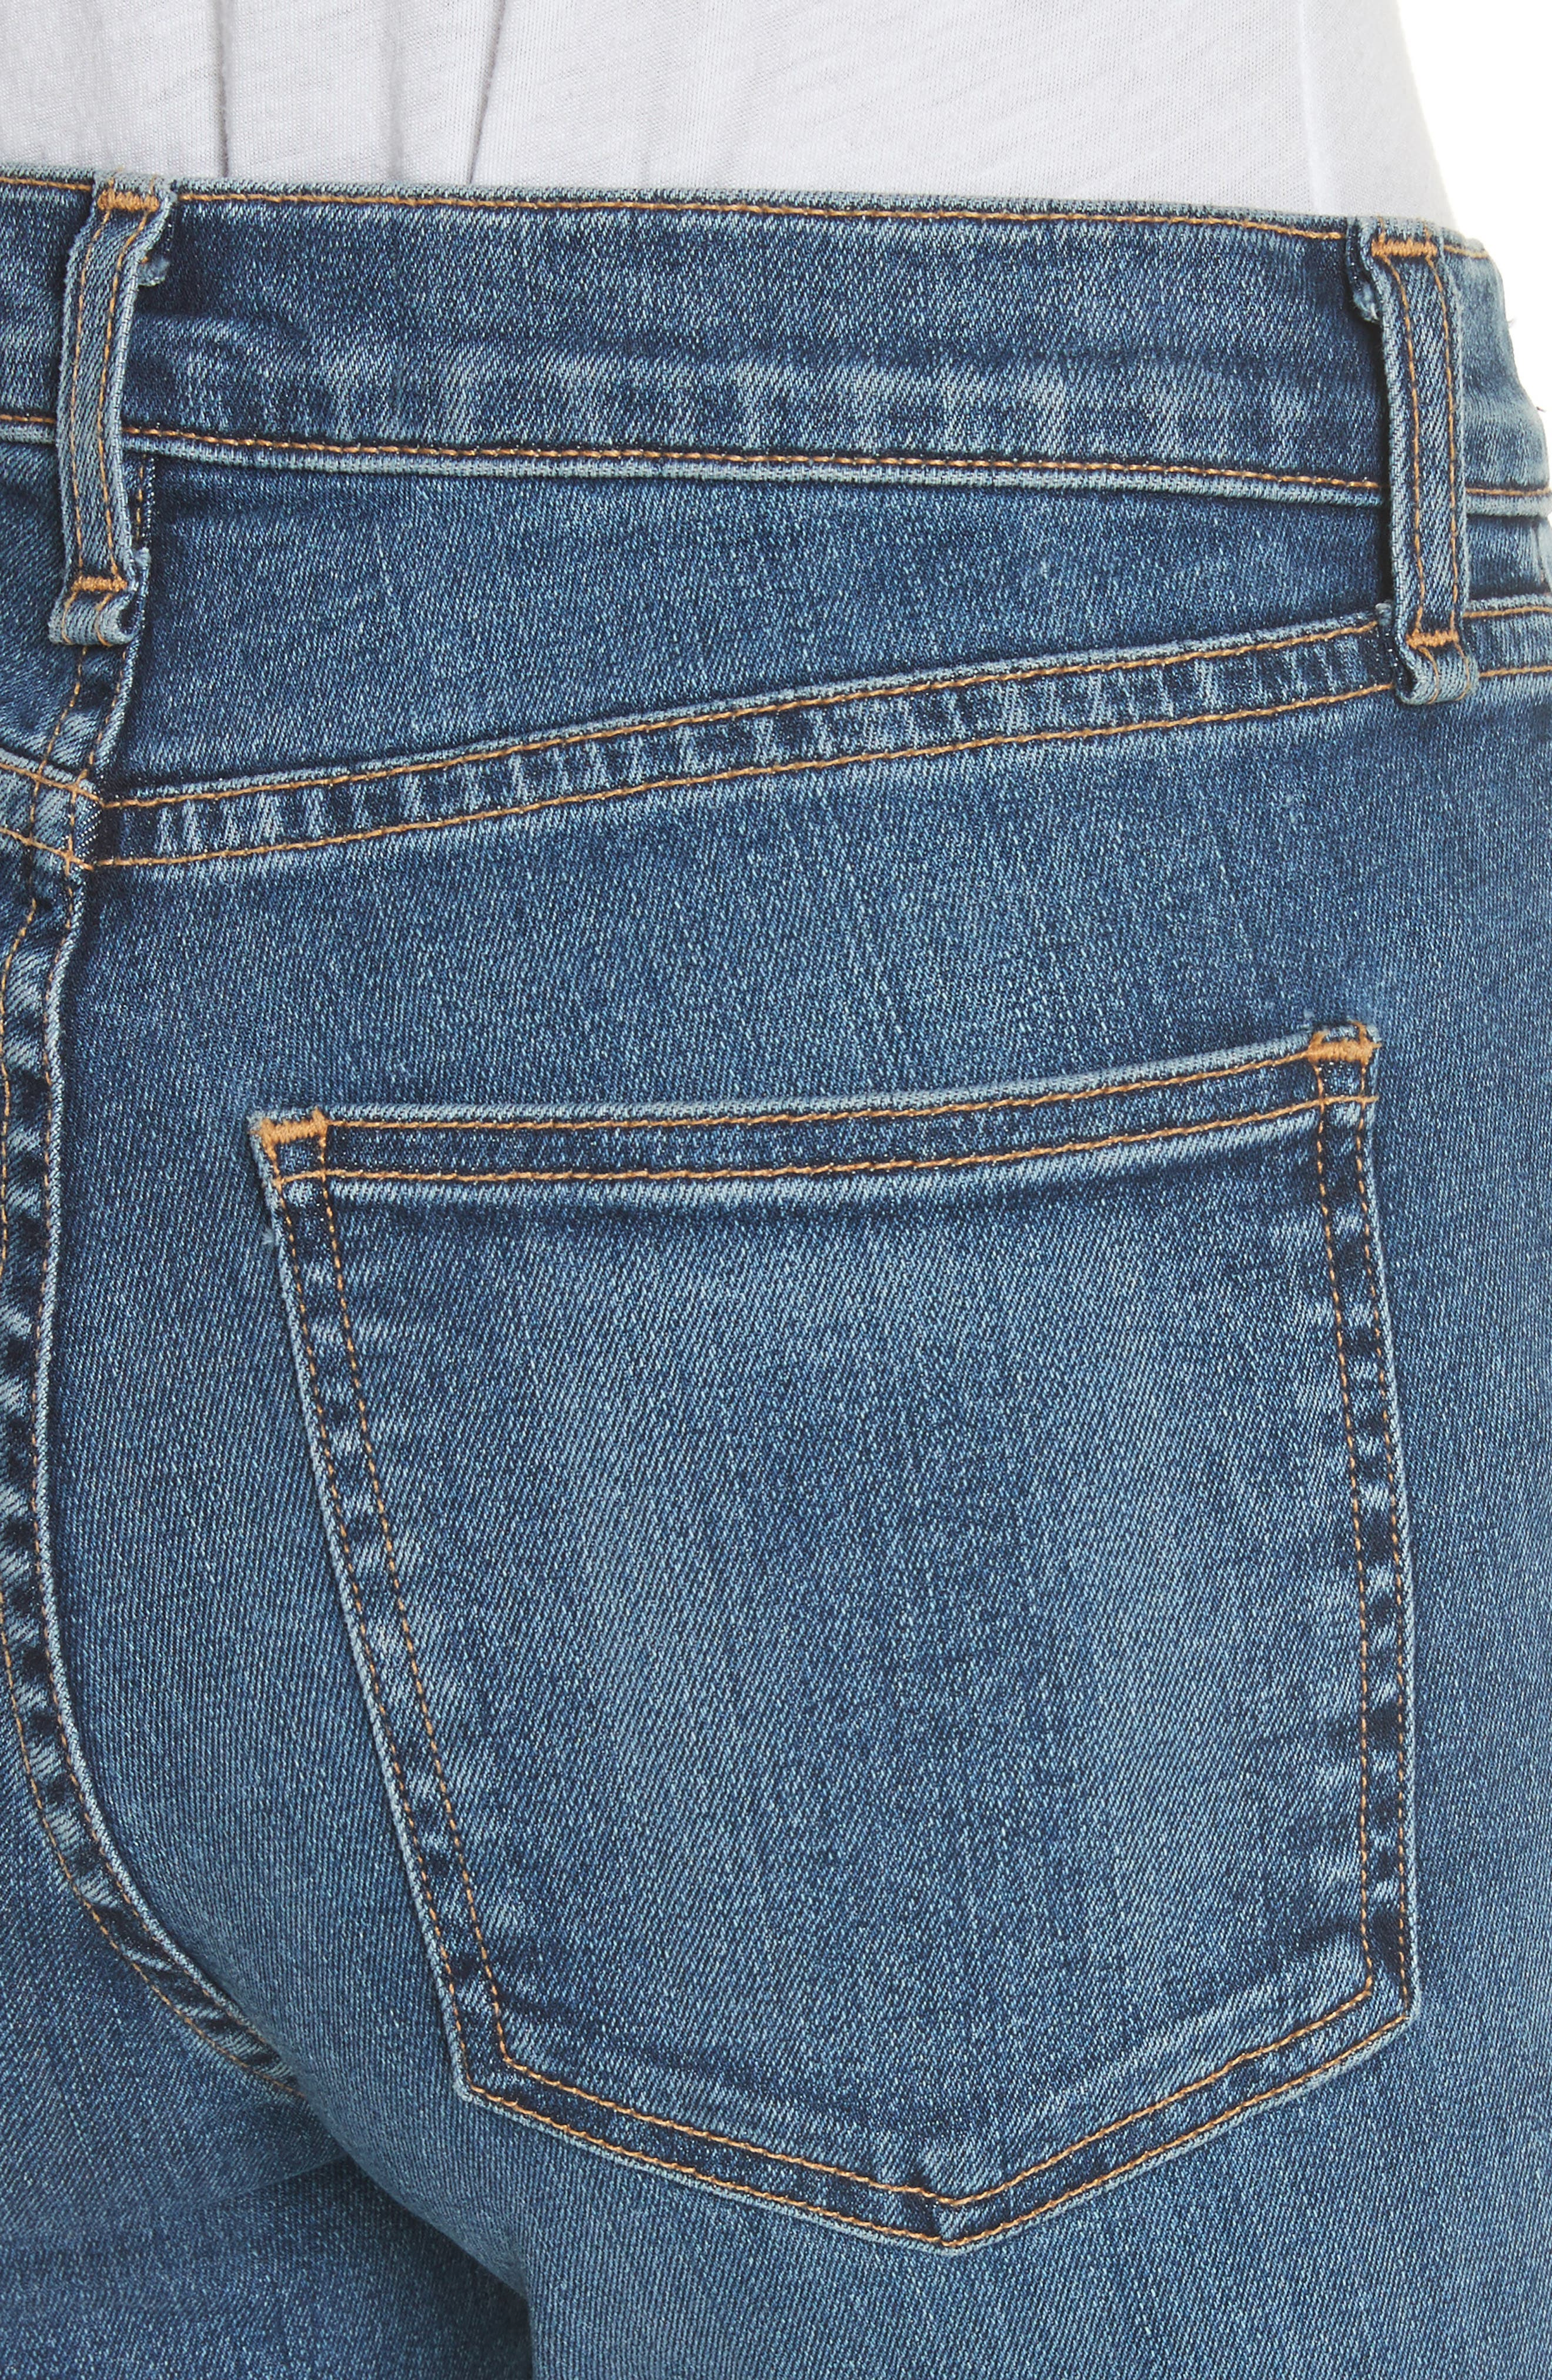 Kate Crop Skinny Jeans,                             Alternate thumbnail 4, color,                             Classic Wash